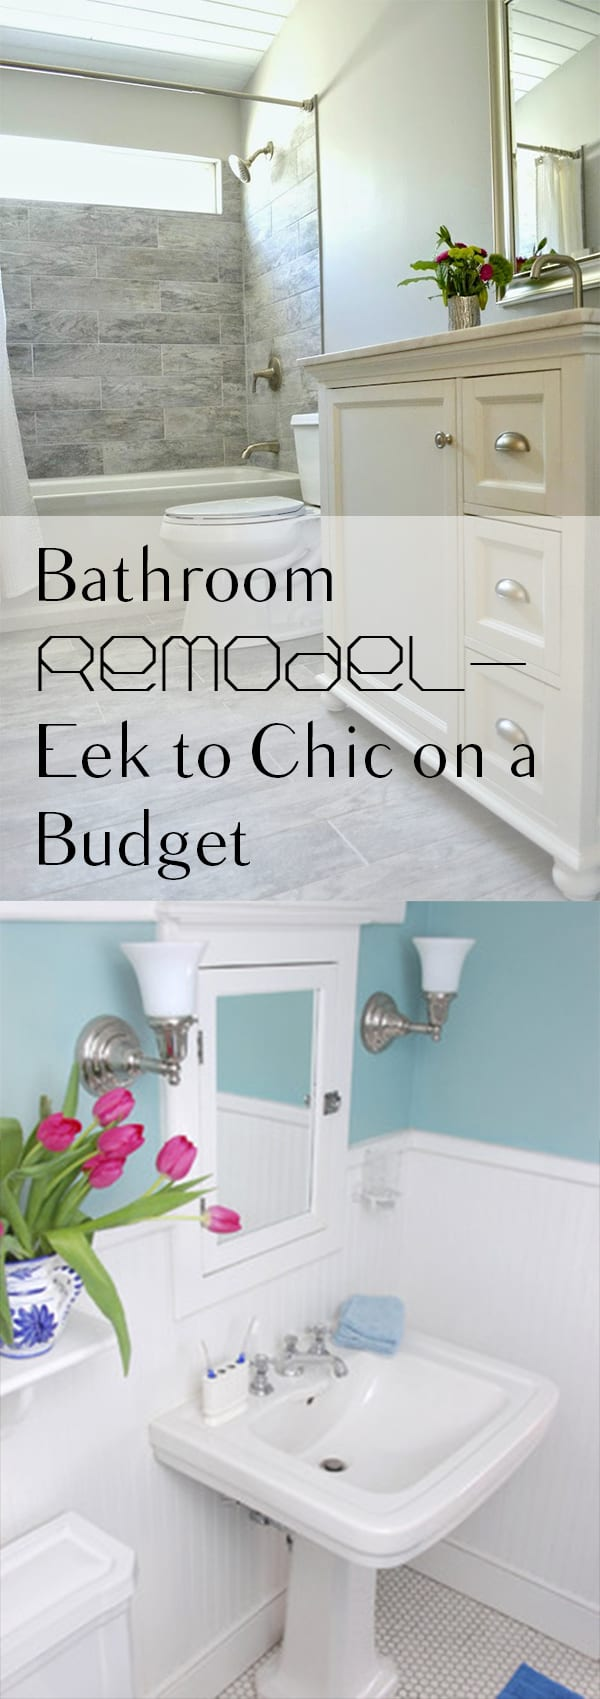 How to Remodel your bathroom from Eek to Chic on a budget ...